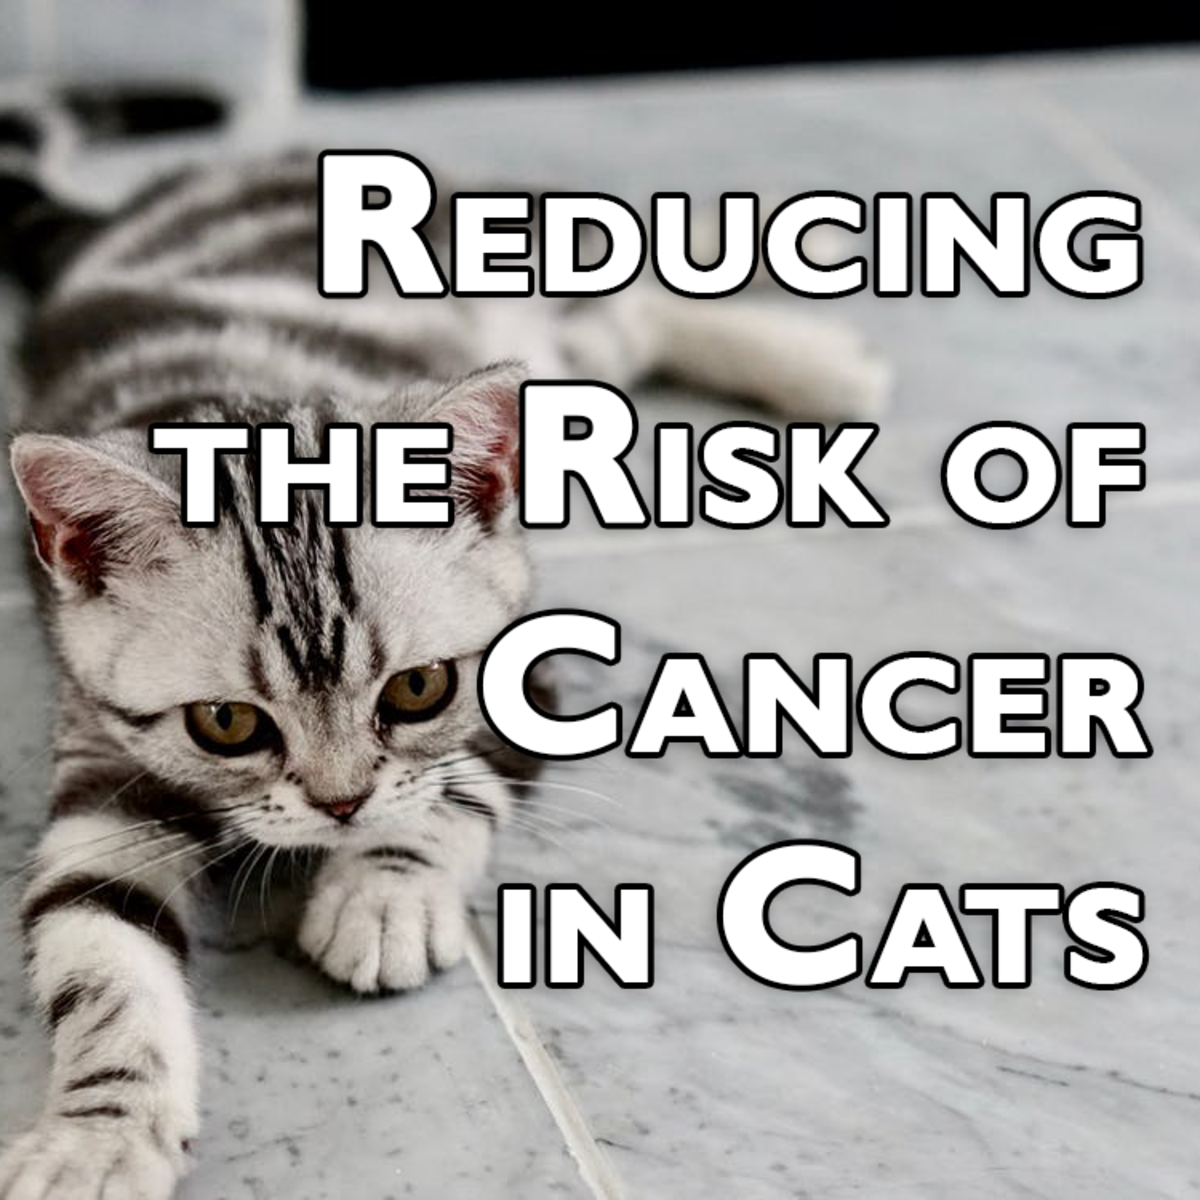 Reducing the Risk of Cancer in Cats: 7 Ways to Prevent Cancer in Your Feline Friend